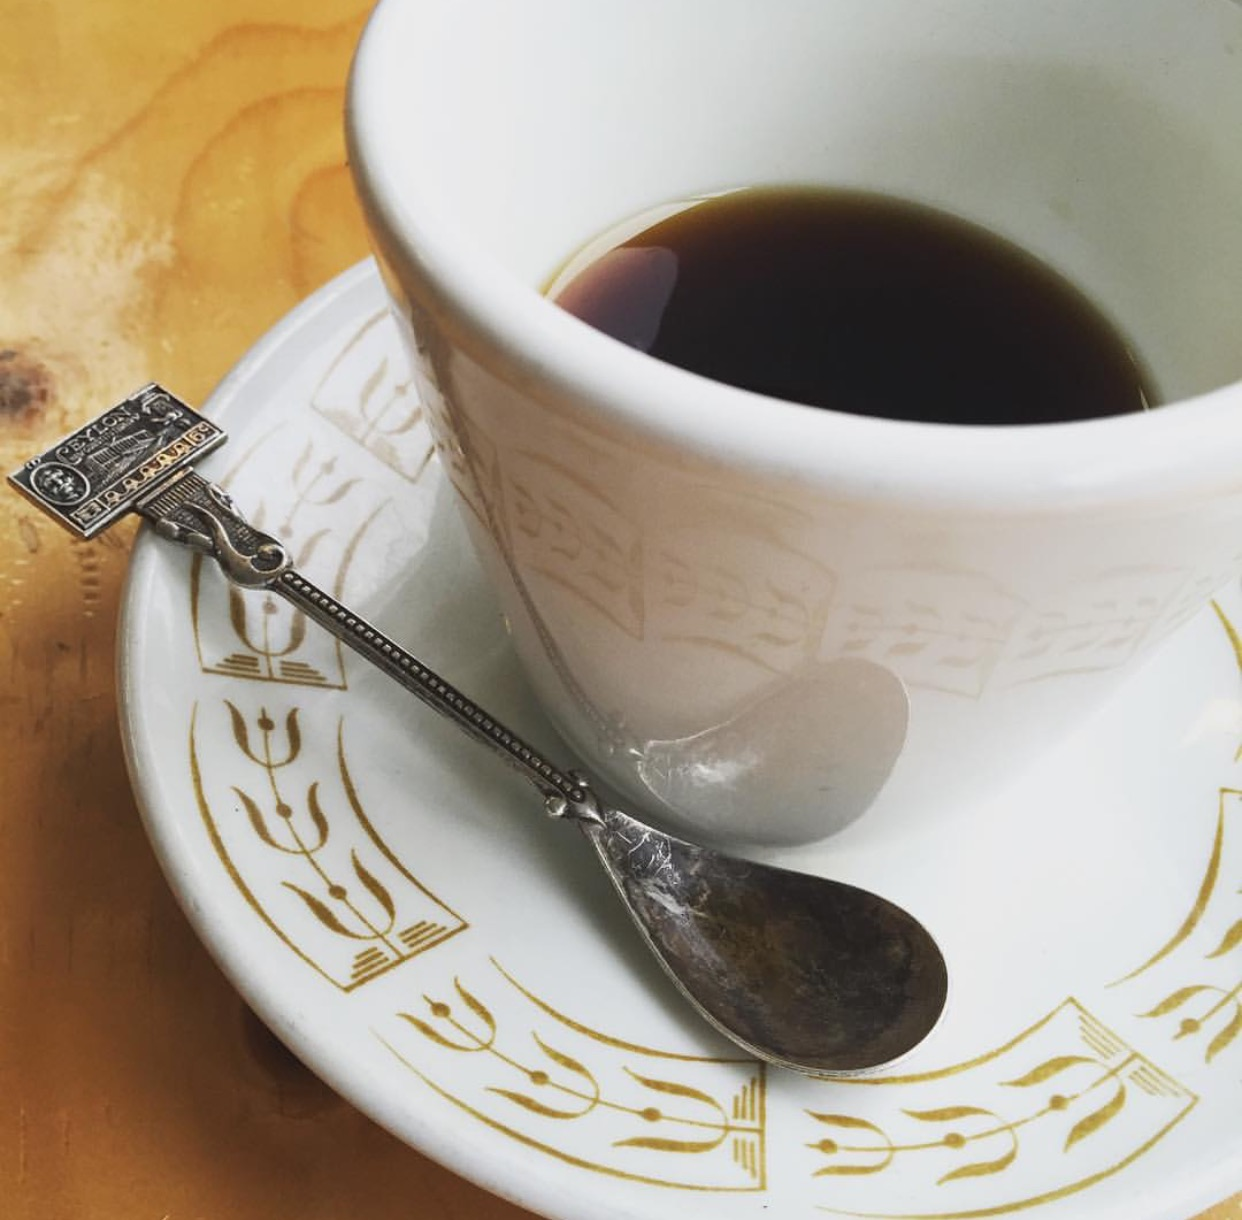 A cup of coffee on a white and gold saucer with a small spoon.